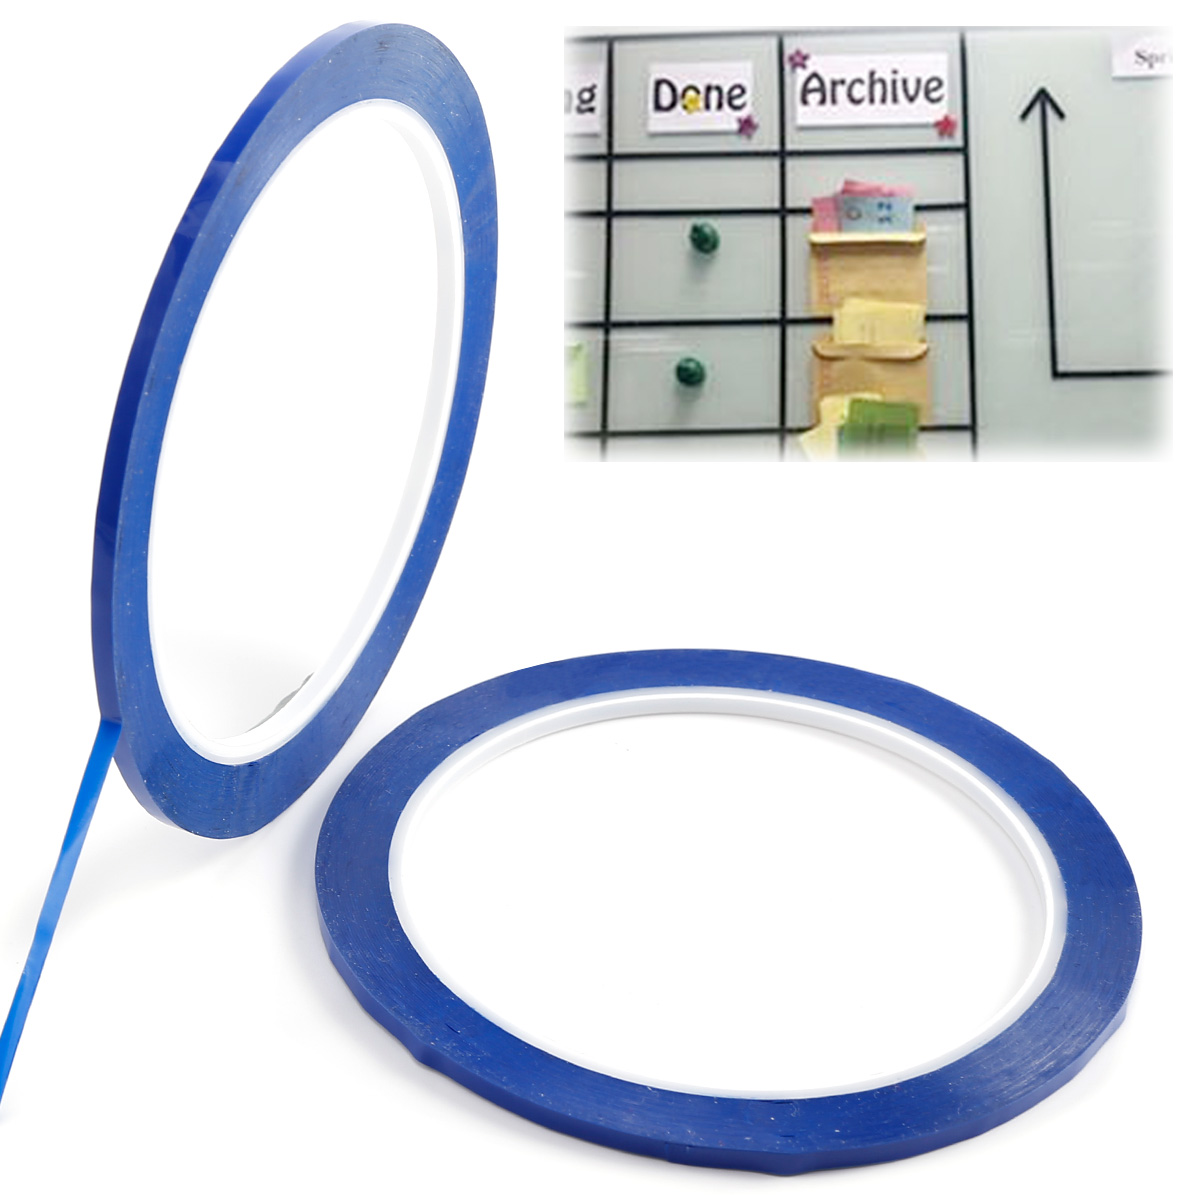 2 Roll 50m Blue Self Adhesive Whiteboard Grid Gridding Marking Tape Non Magnetic | eBay